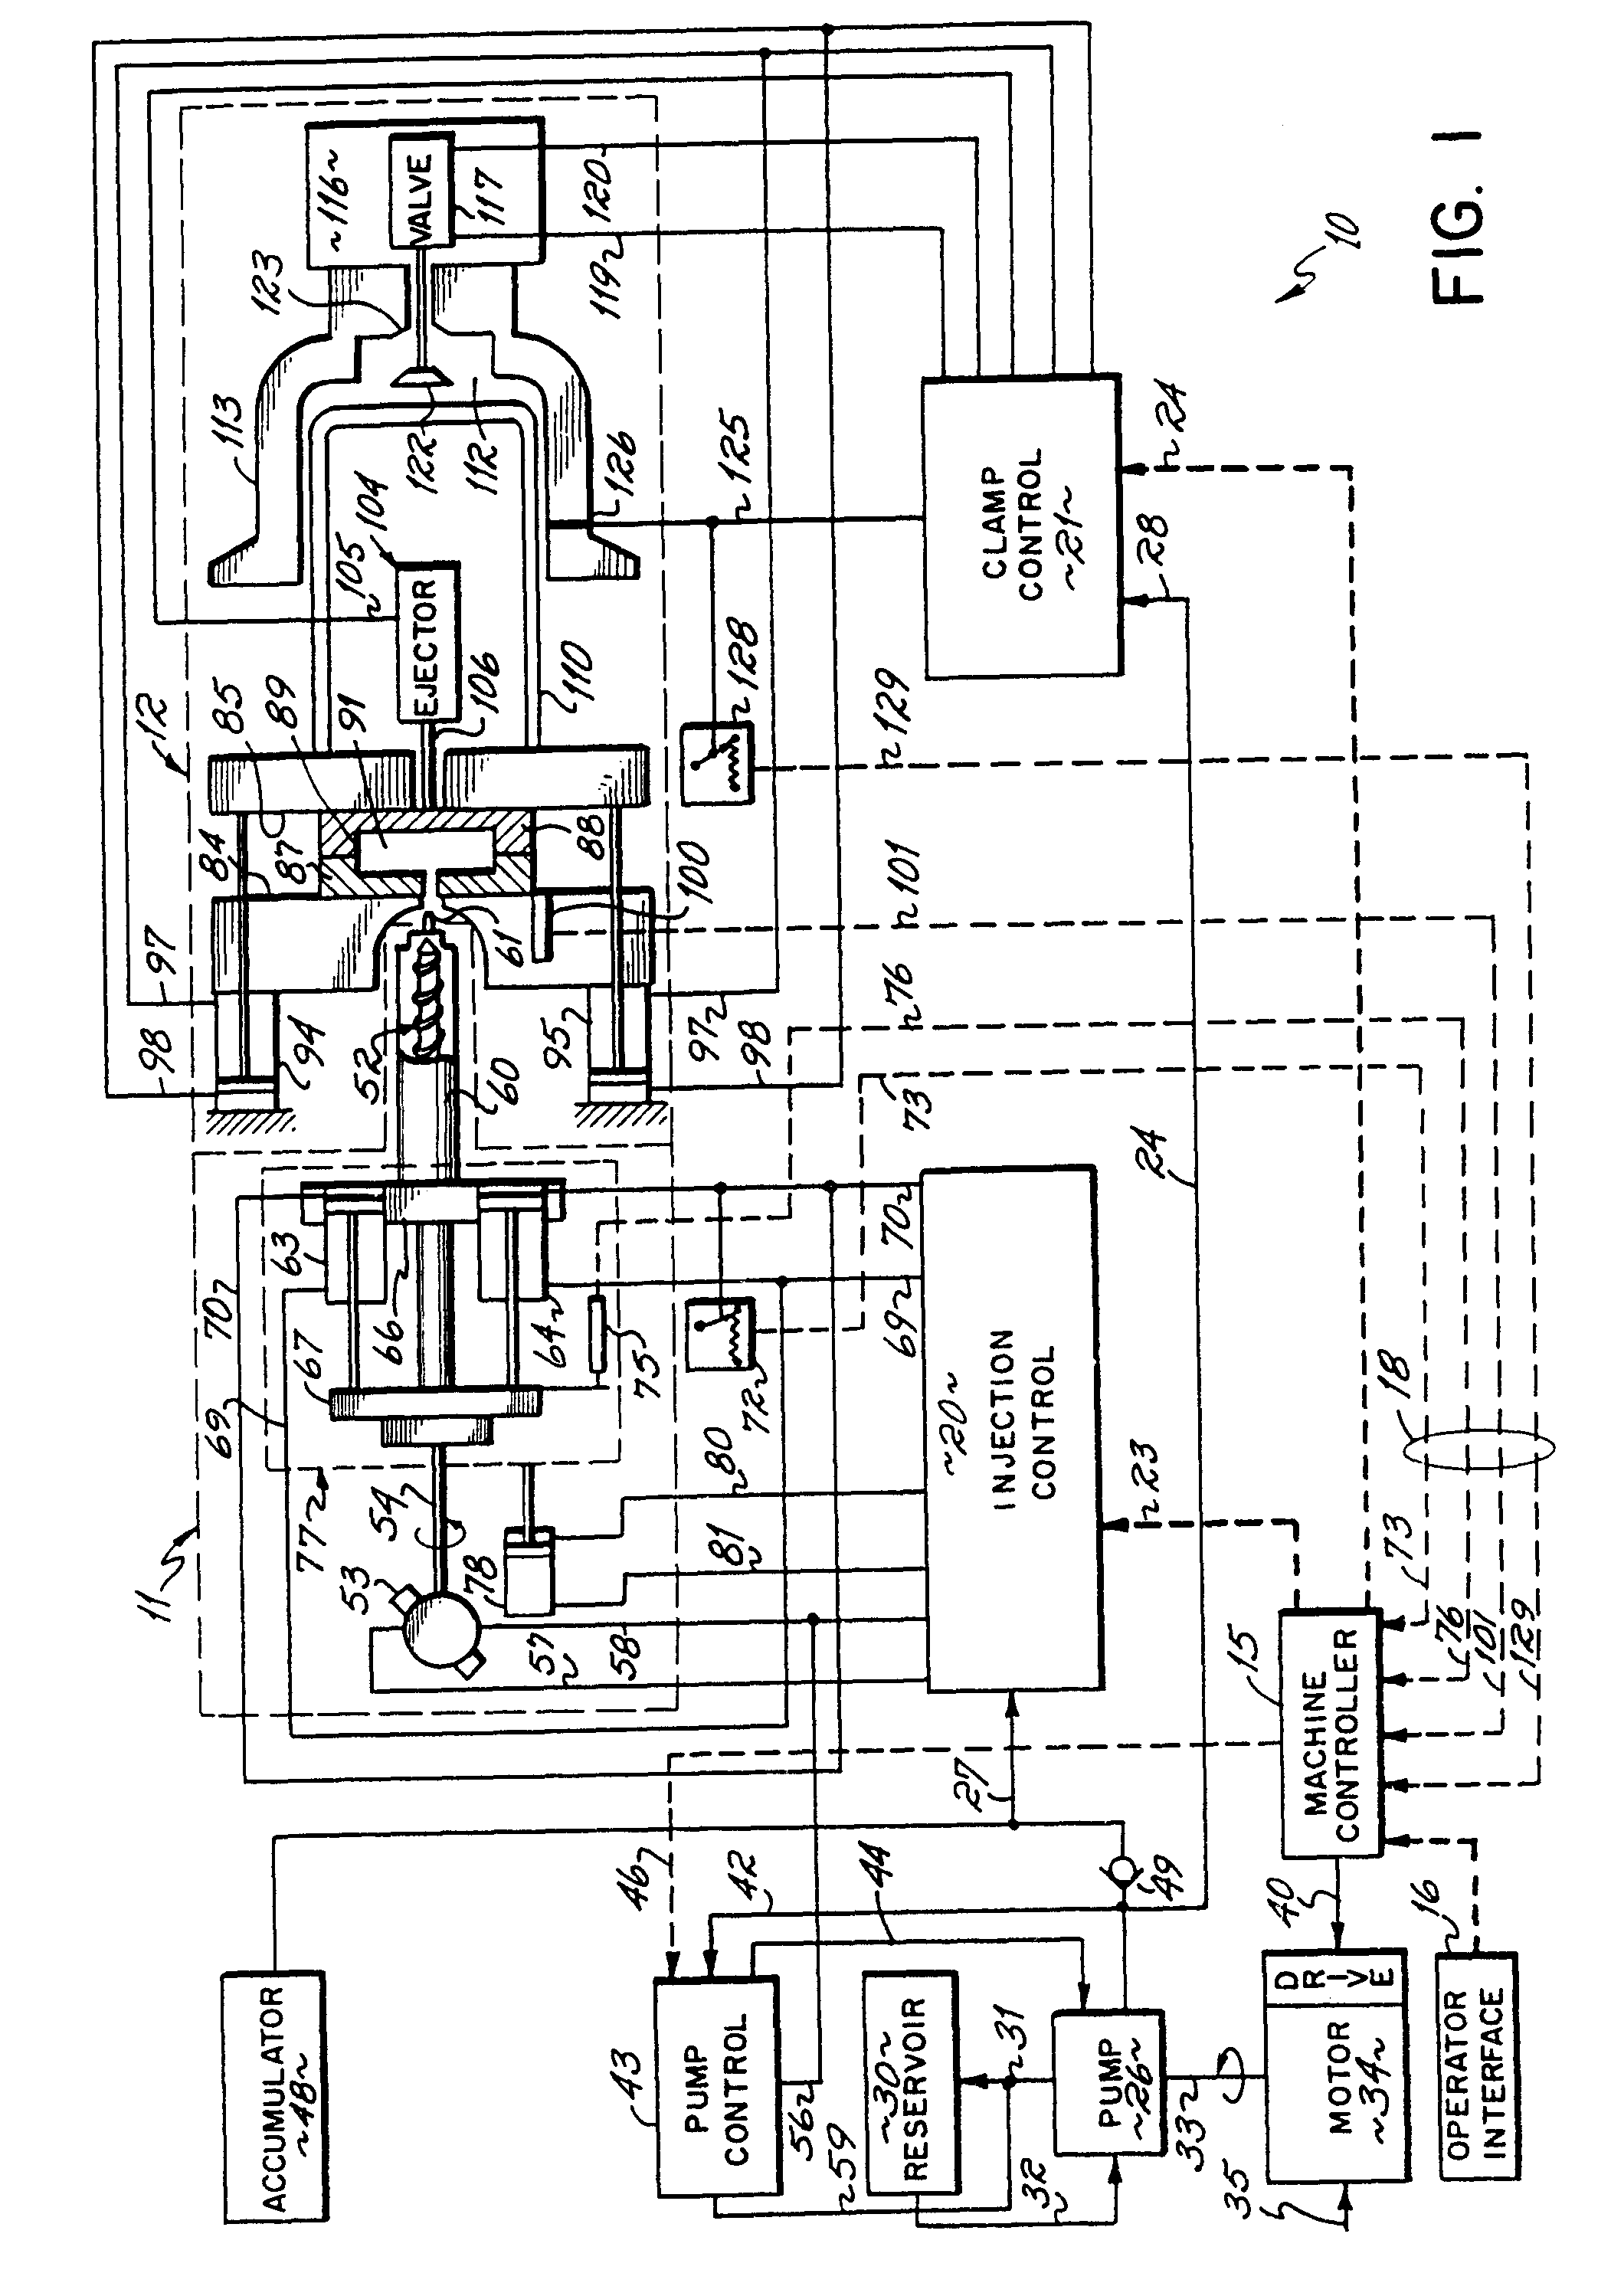 patent ep0464286a2 - injection moulding machine with electro-hydraulic control means